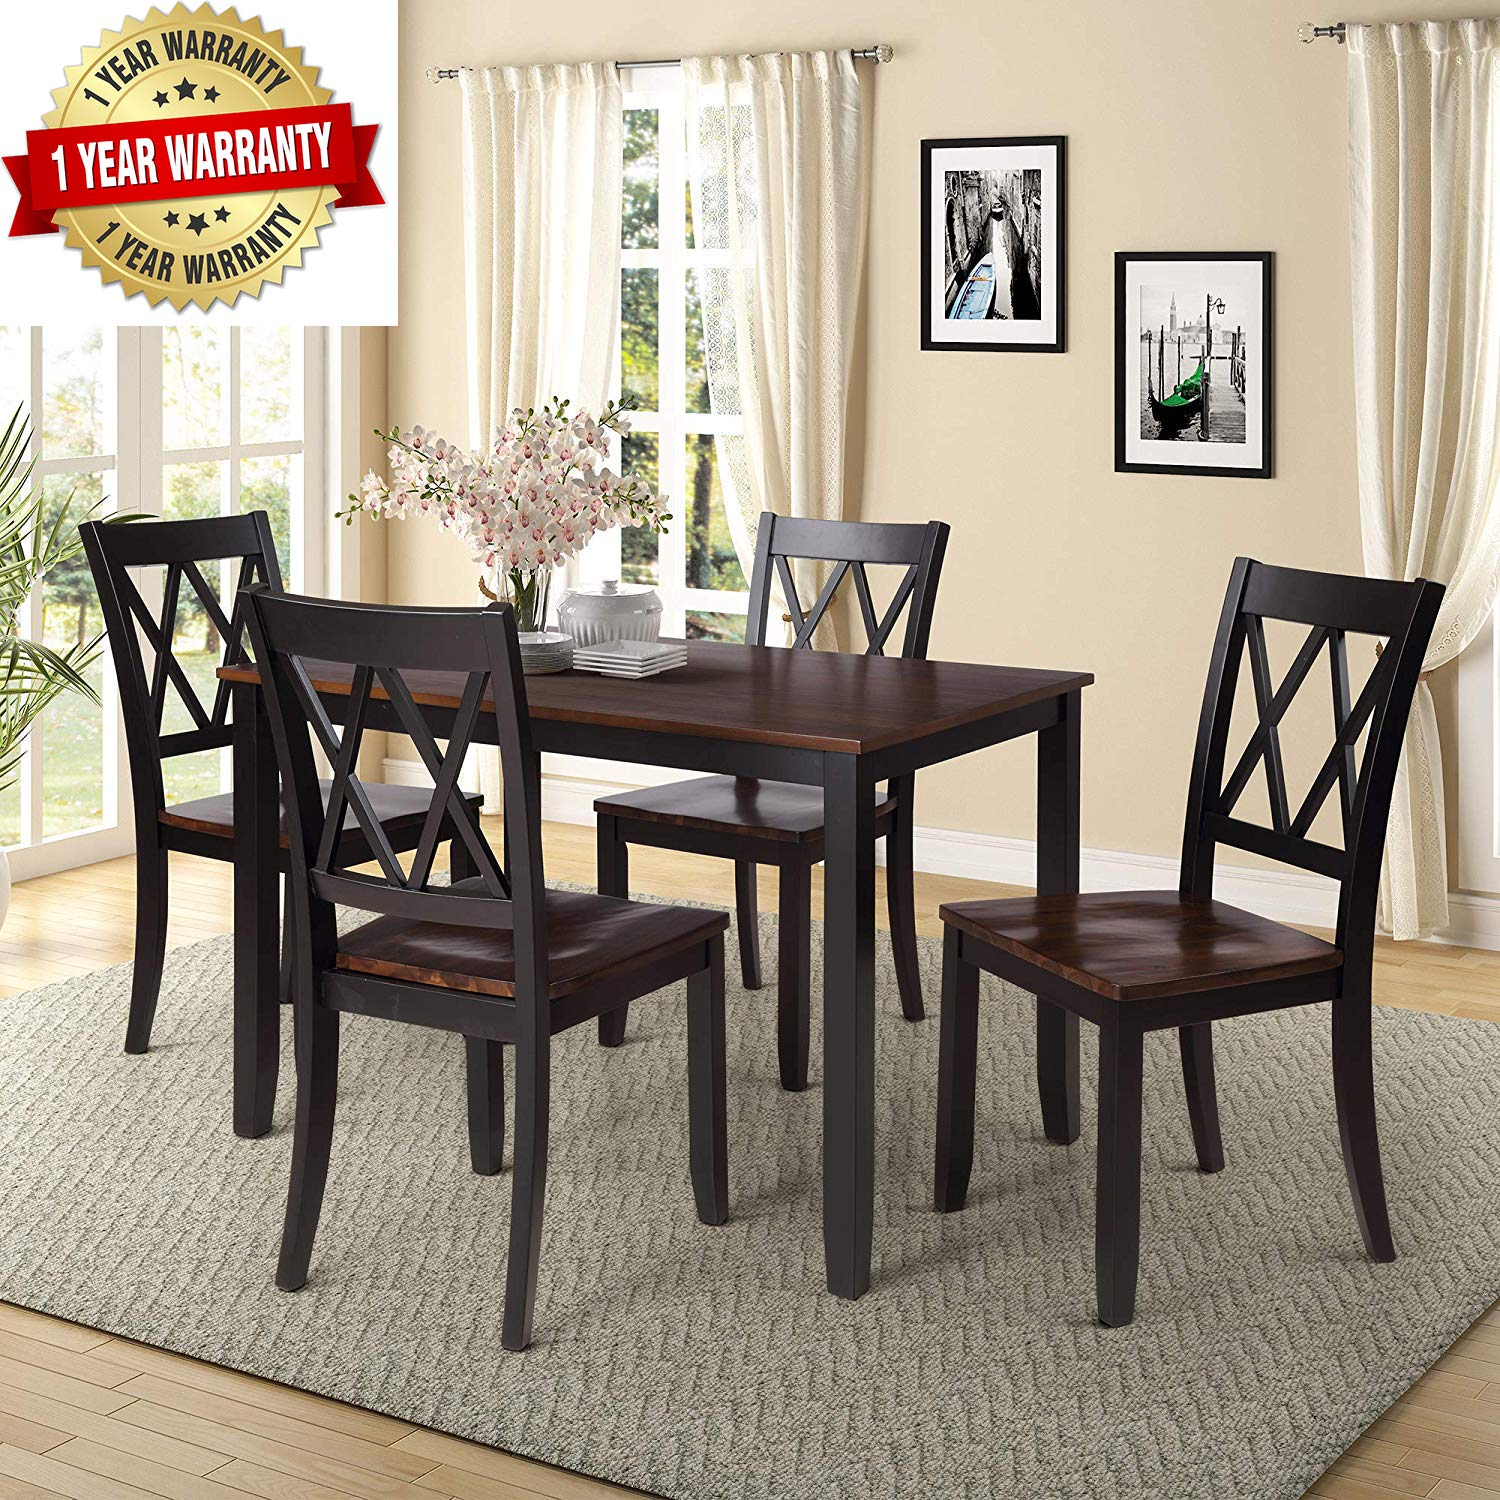 Merax 5-Piece Dining Table Set Home Kitchen Table with 4 Chairs SolidWood and ExquisiteDining Room Furniture by Merax